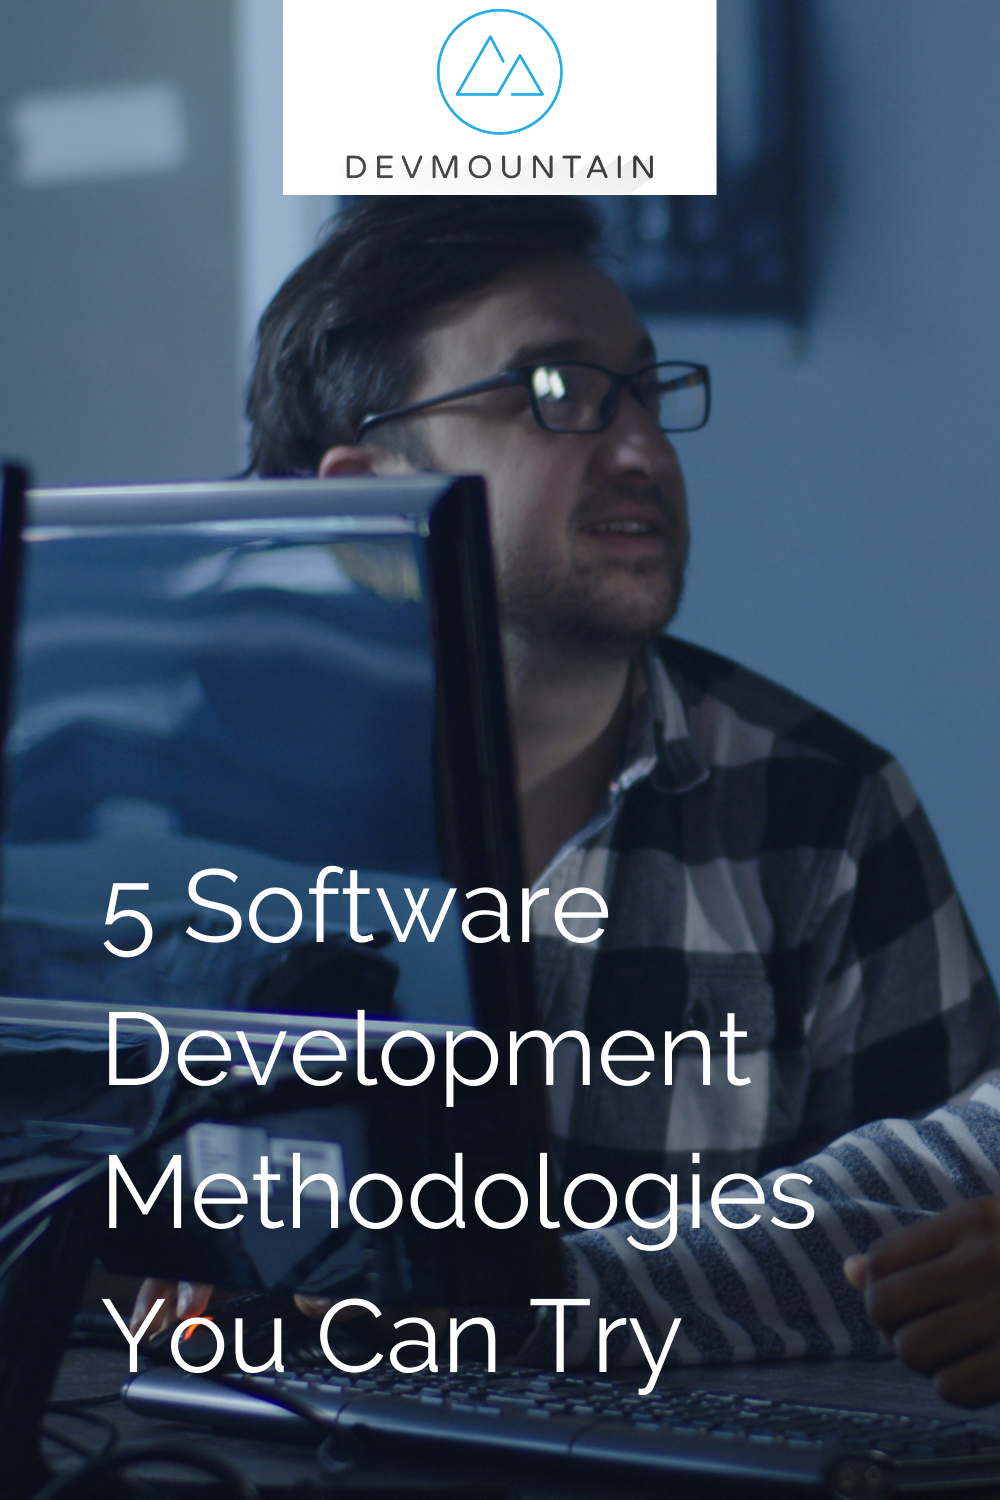 5 Software Development Methodologies You Can Try